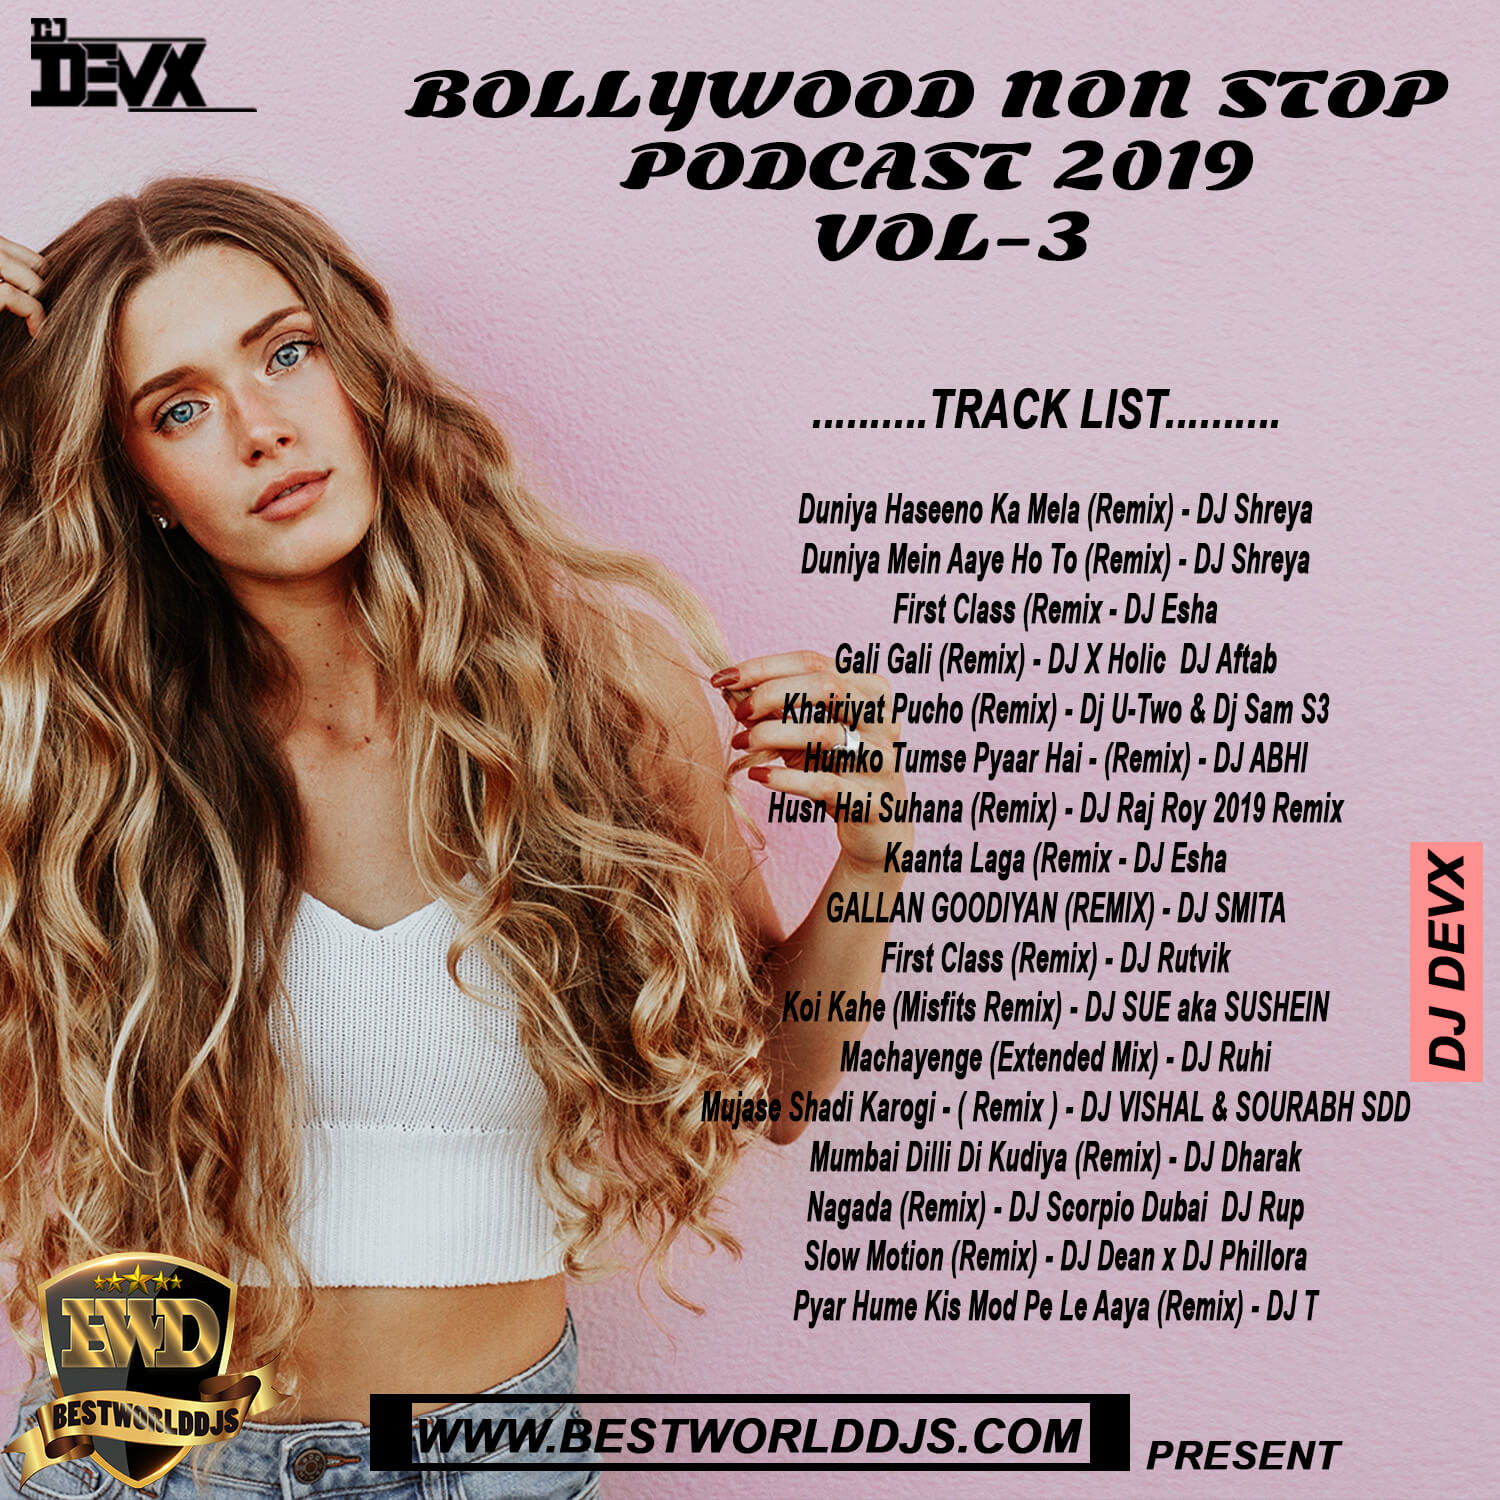 BOLLYWOOD NON STOP PODCAST 2019 VOL 3 DJ DEVX